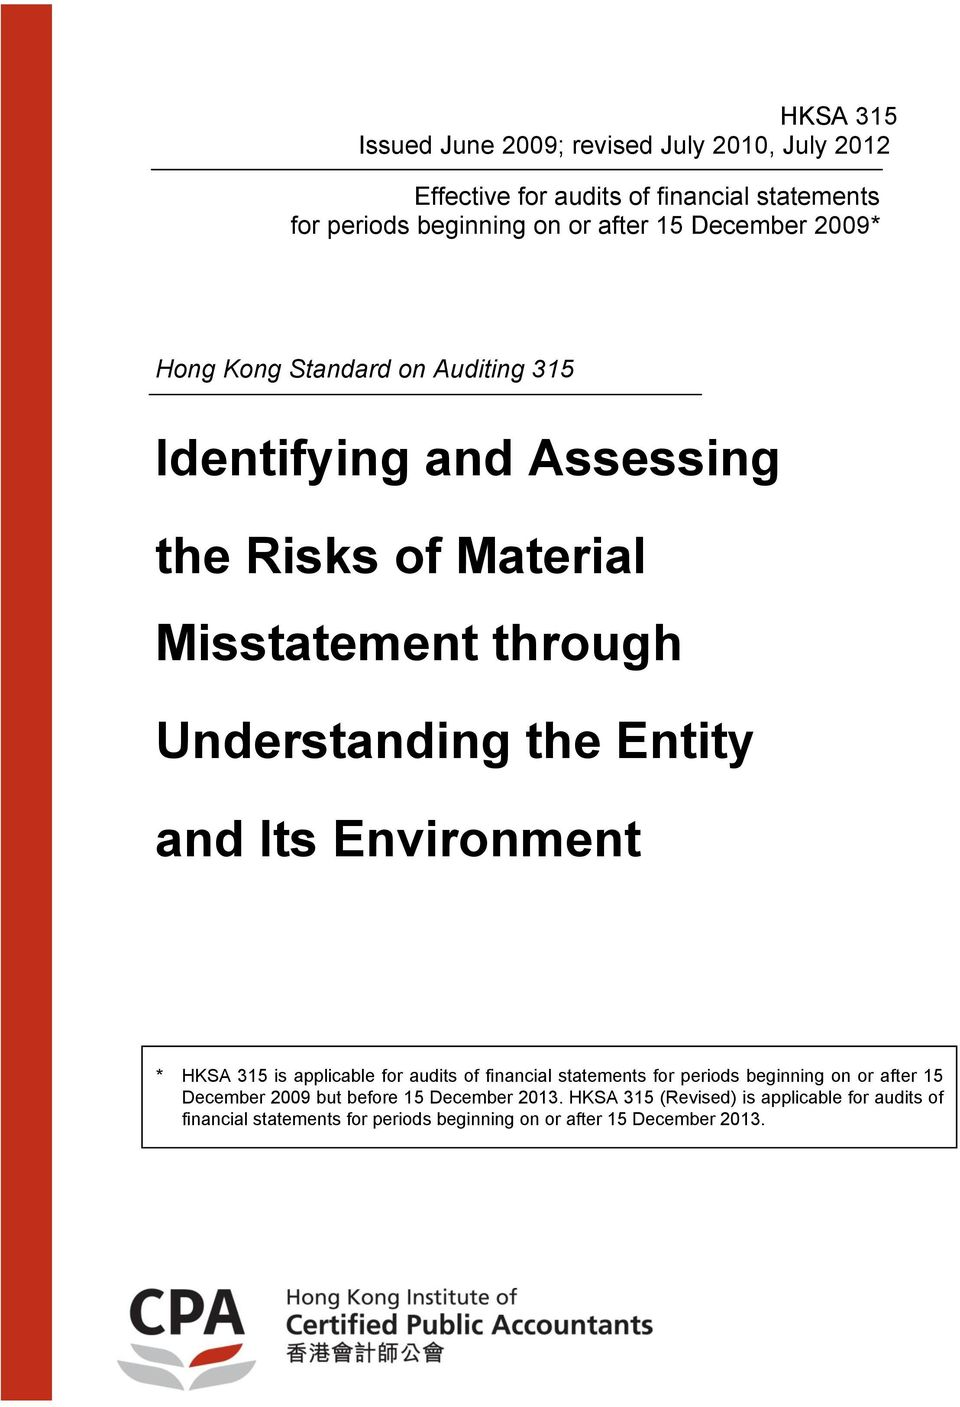 the Entity and Its Environment * is applicable for audits of financial statements for periods beginning on or after 15 December 2009